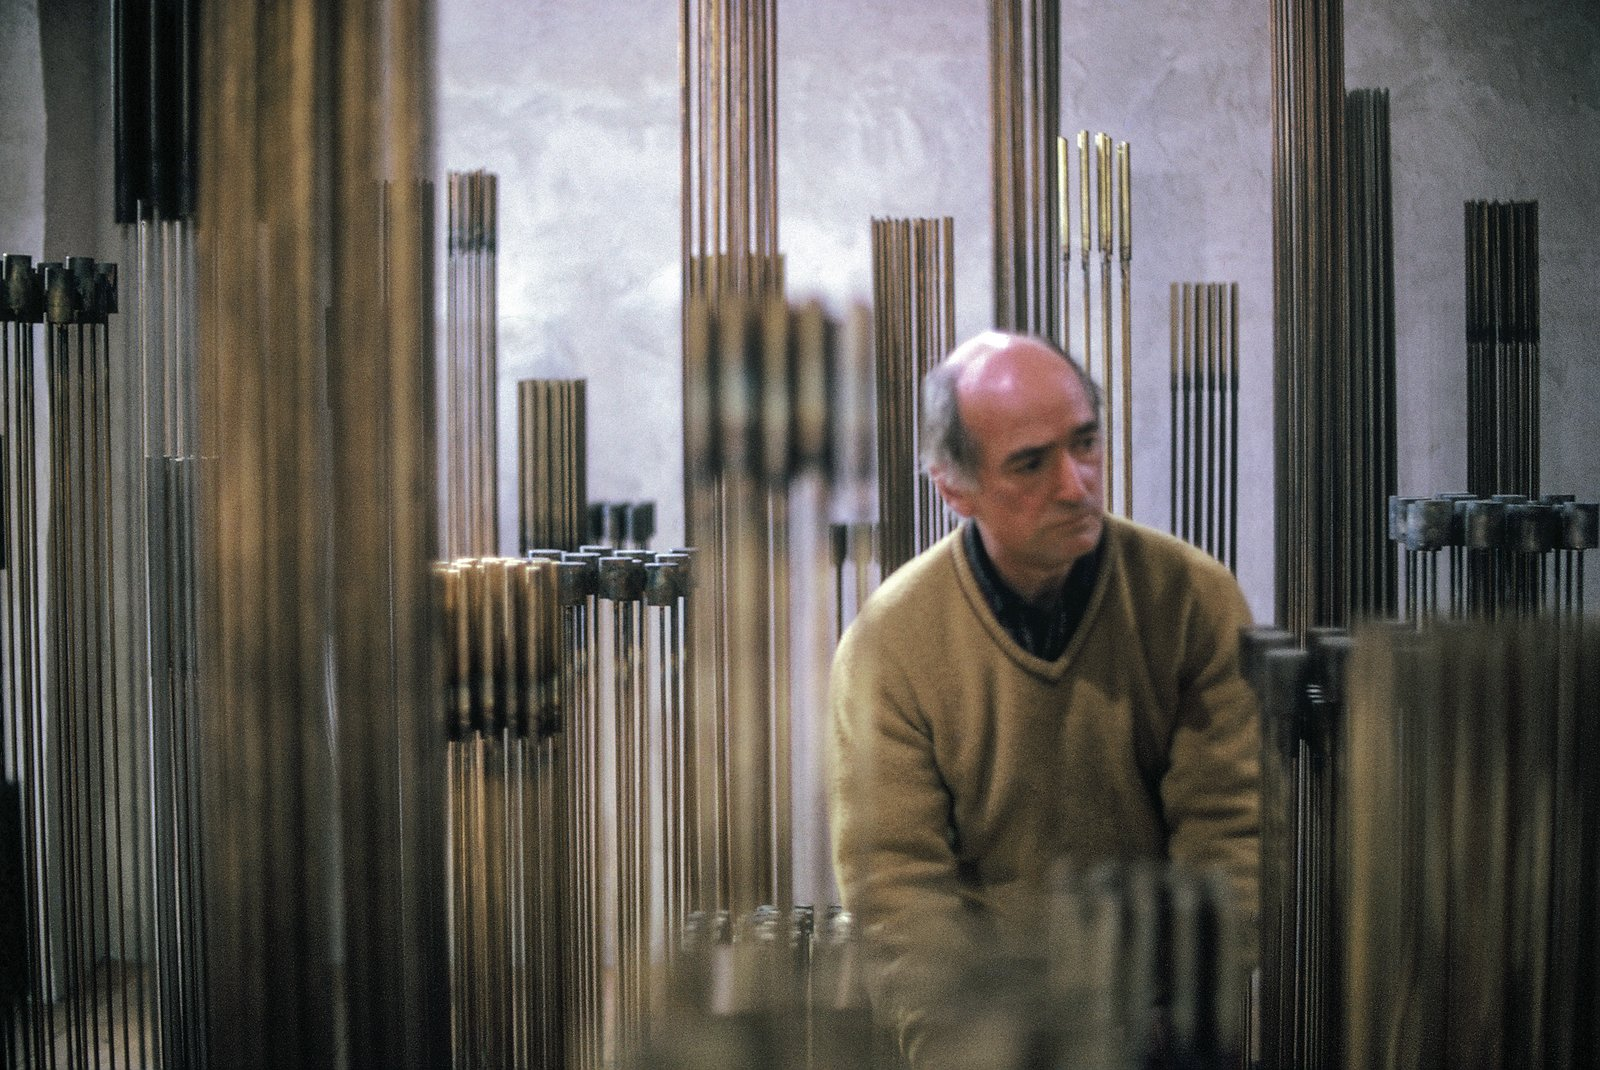 Photo 2 of 15 in A New Box Set Captures Harry Bertoia at the Sonambient Barn